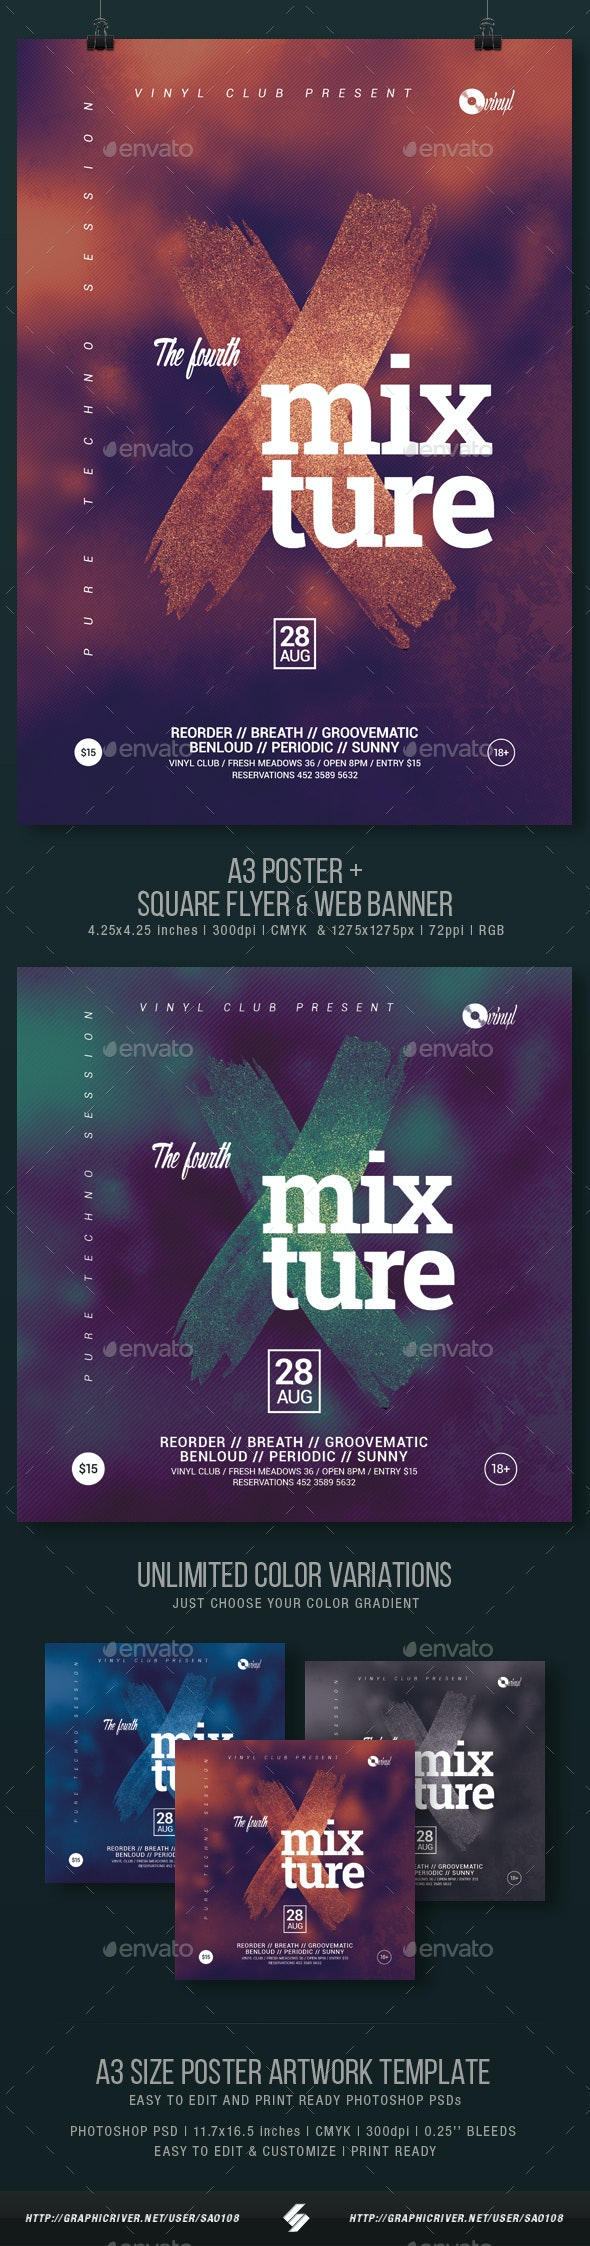 Mixture vol.4 - Club Party Flyer / Poster Template A3 - Clubs & Parties Events